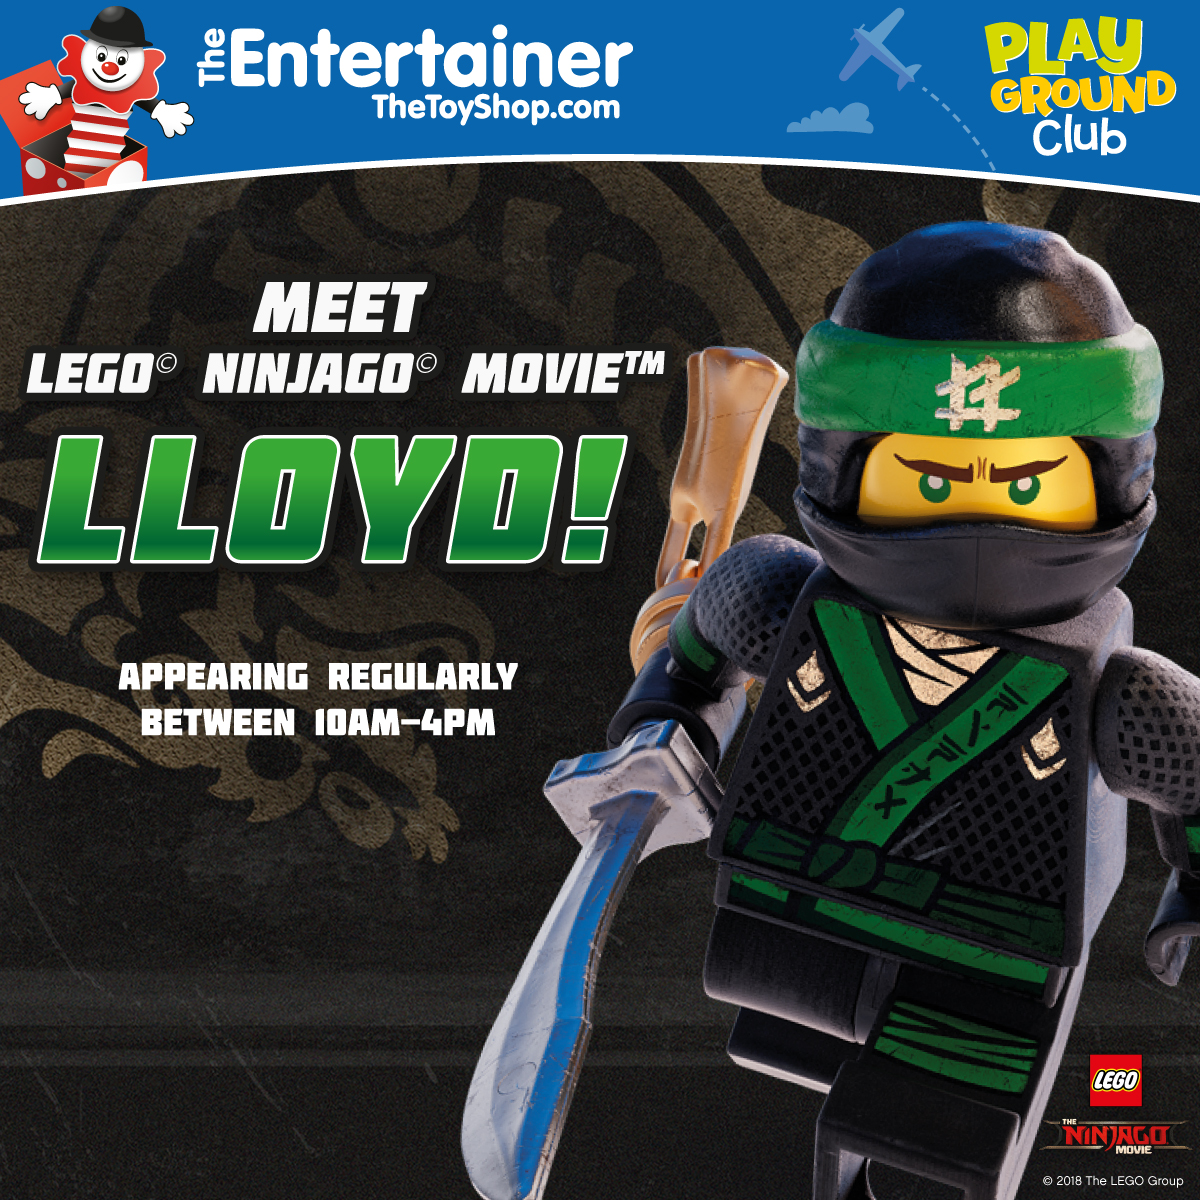 Lloyd from Lego Ninjago is coming to Golden Square!